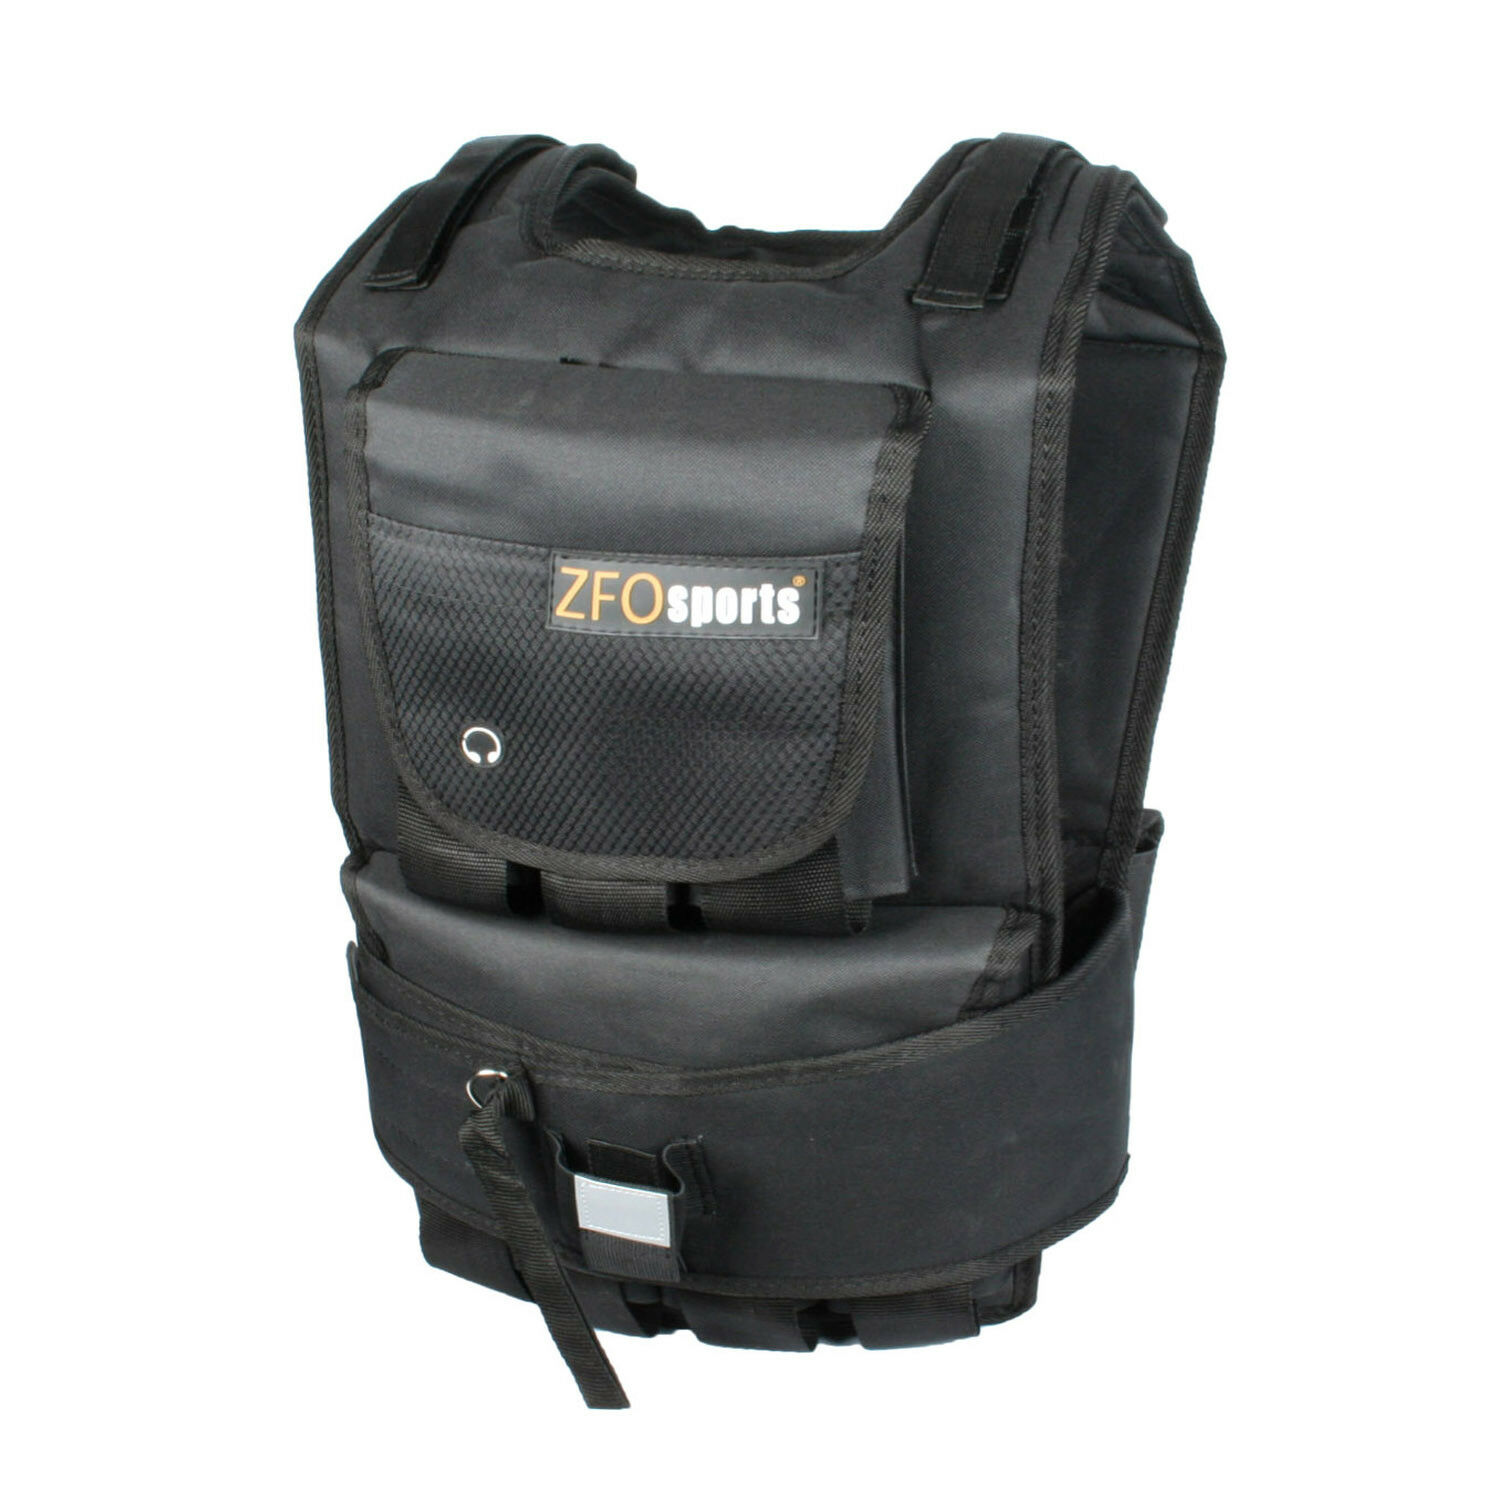 ZFO  Sports  - 60LBS Adjustable Exercise Fitness Weighted Vest  discount sale